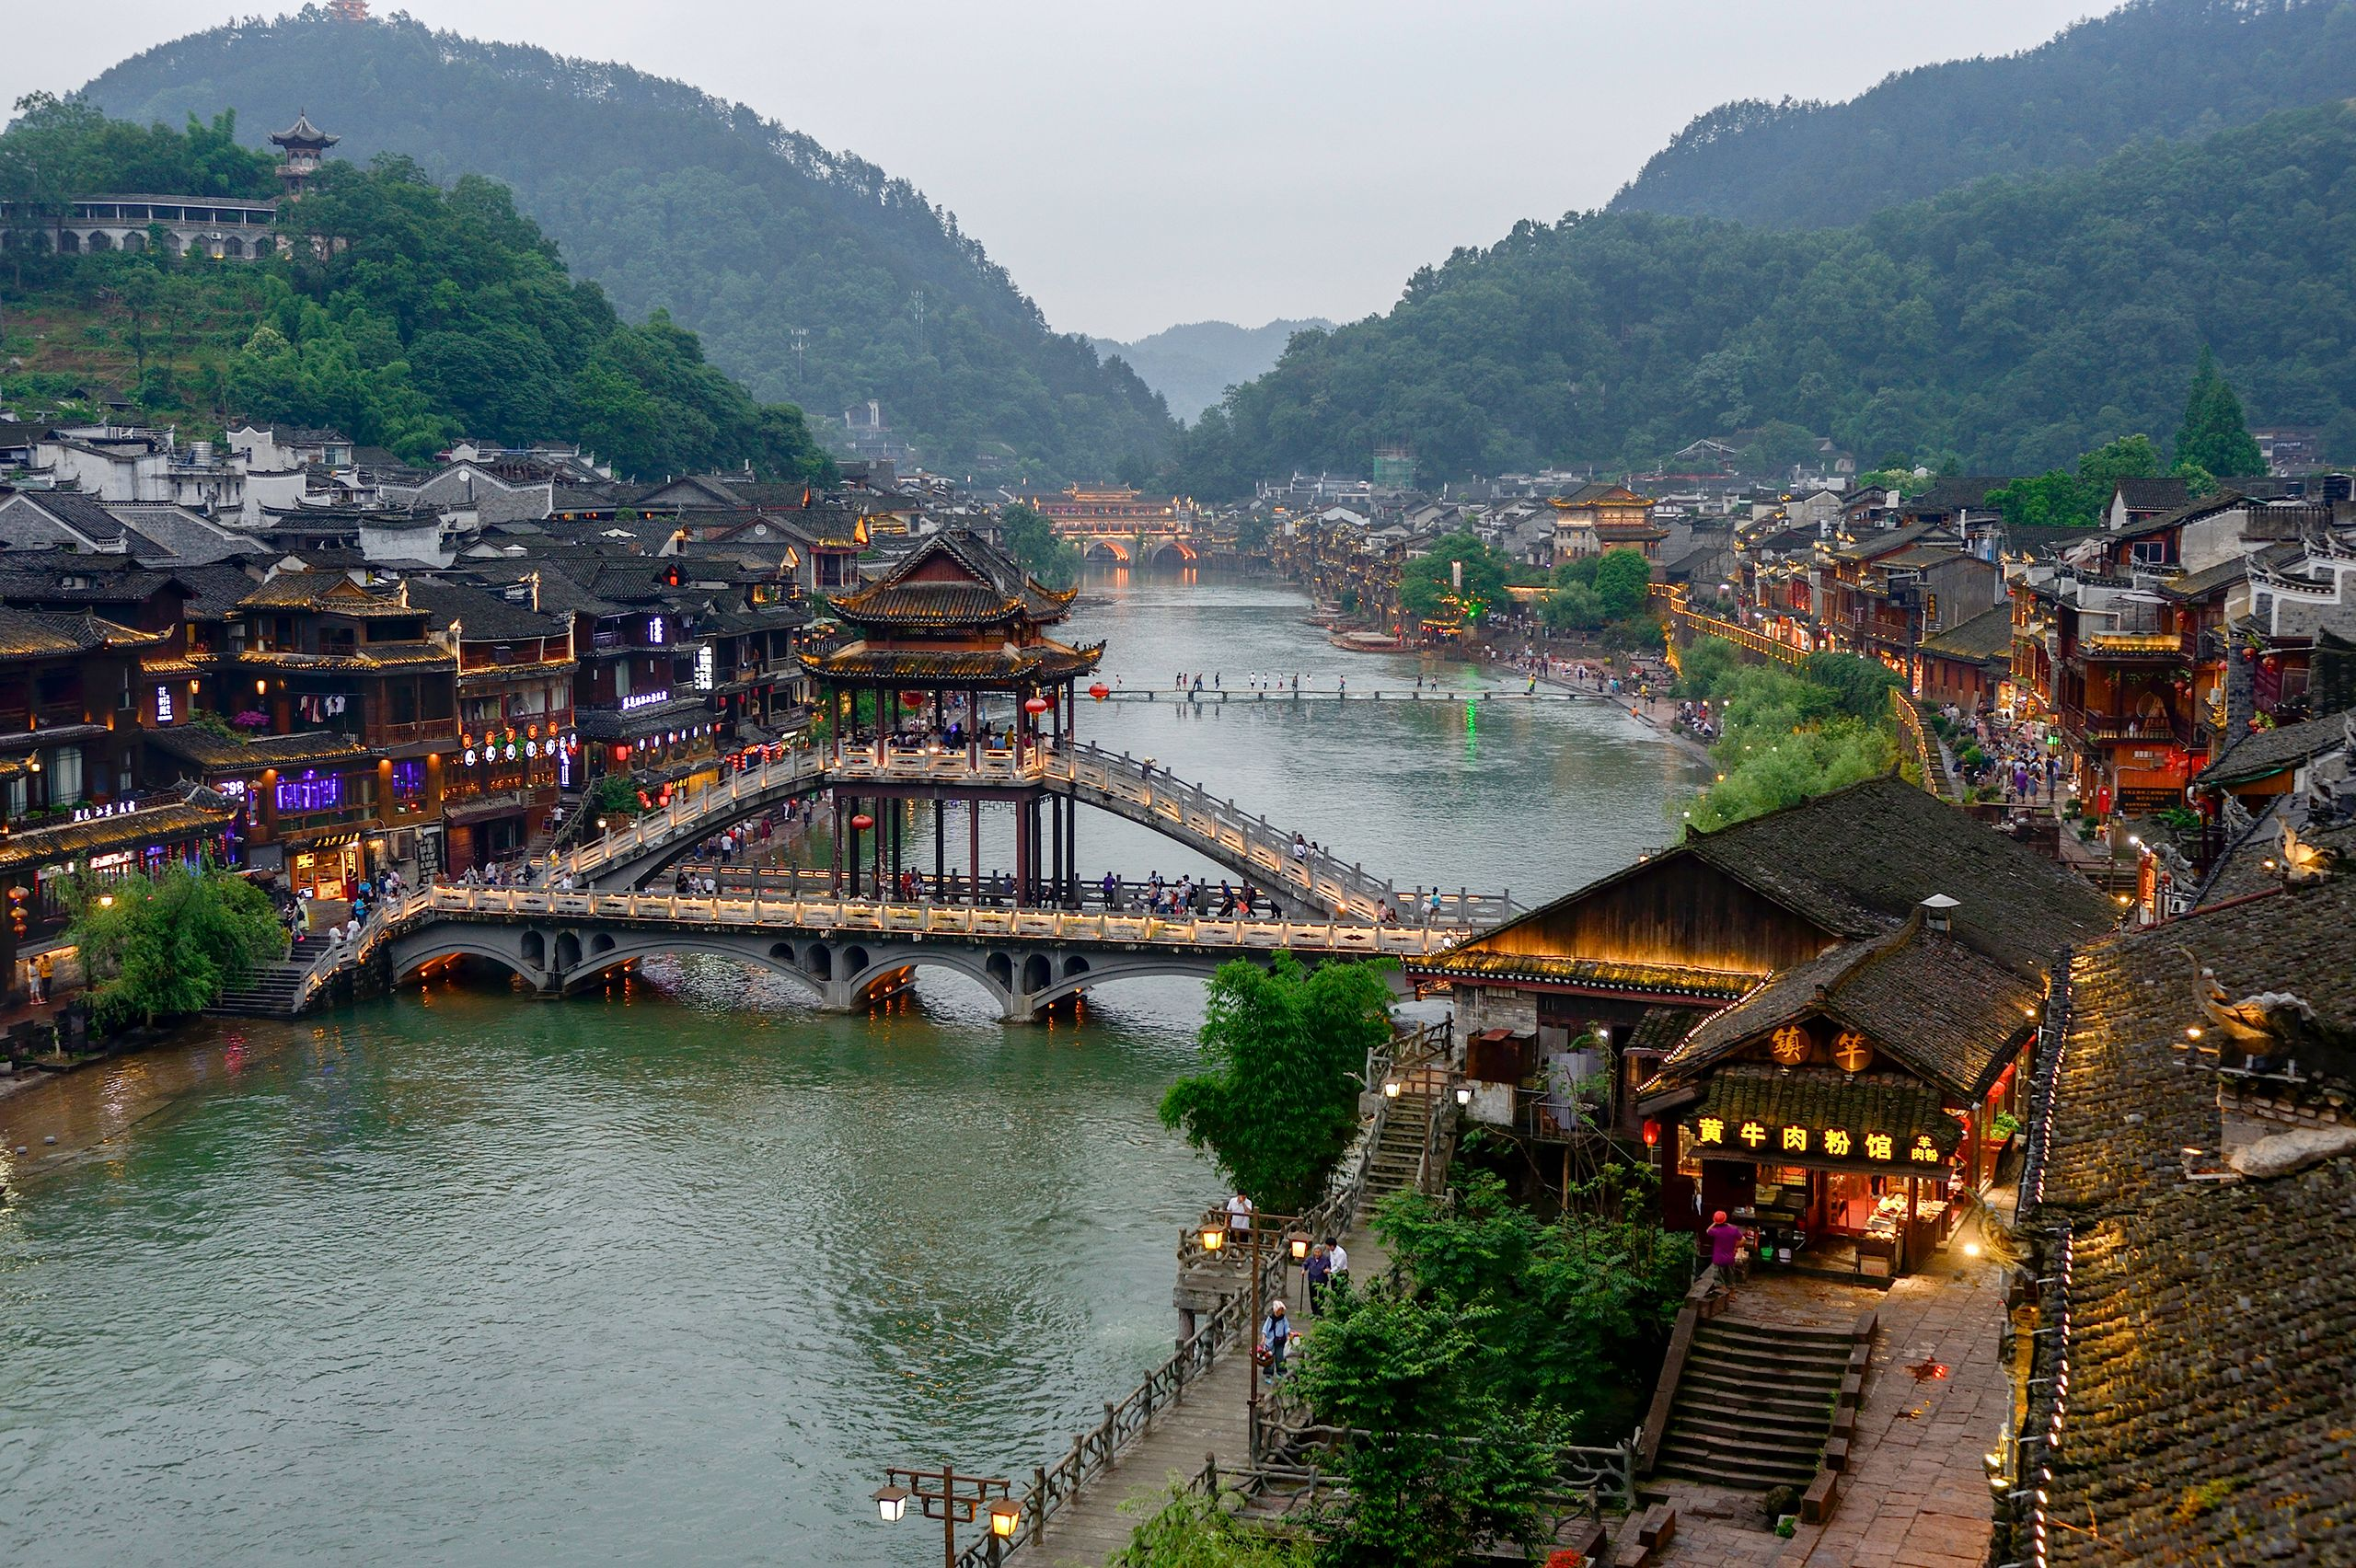 Footbridge over the Tuo Jiang River